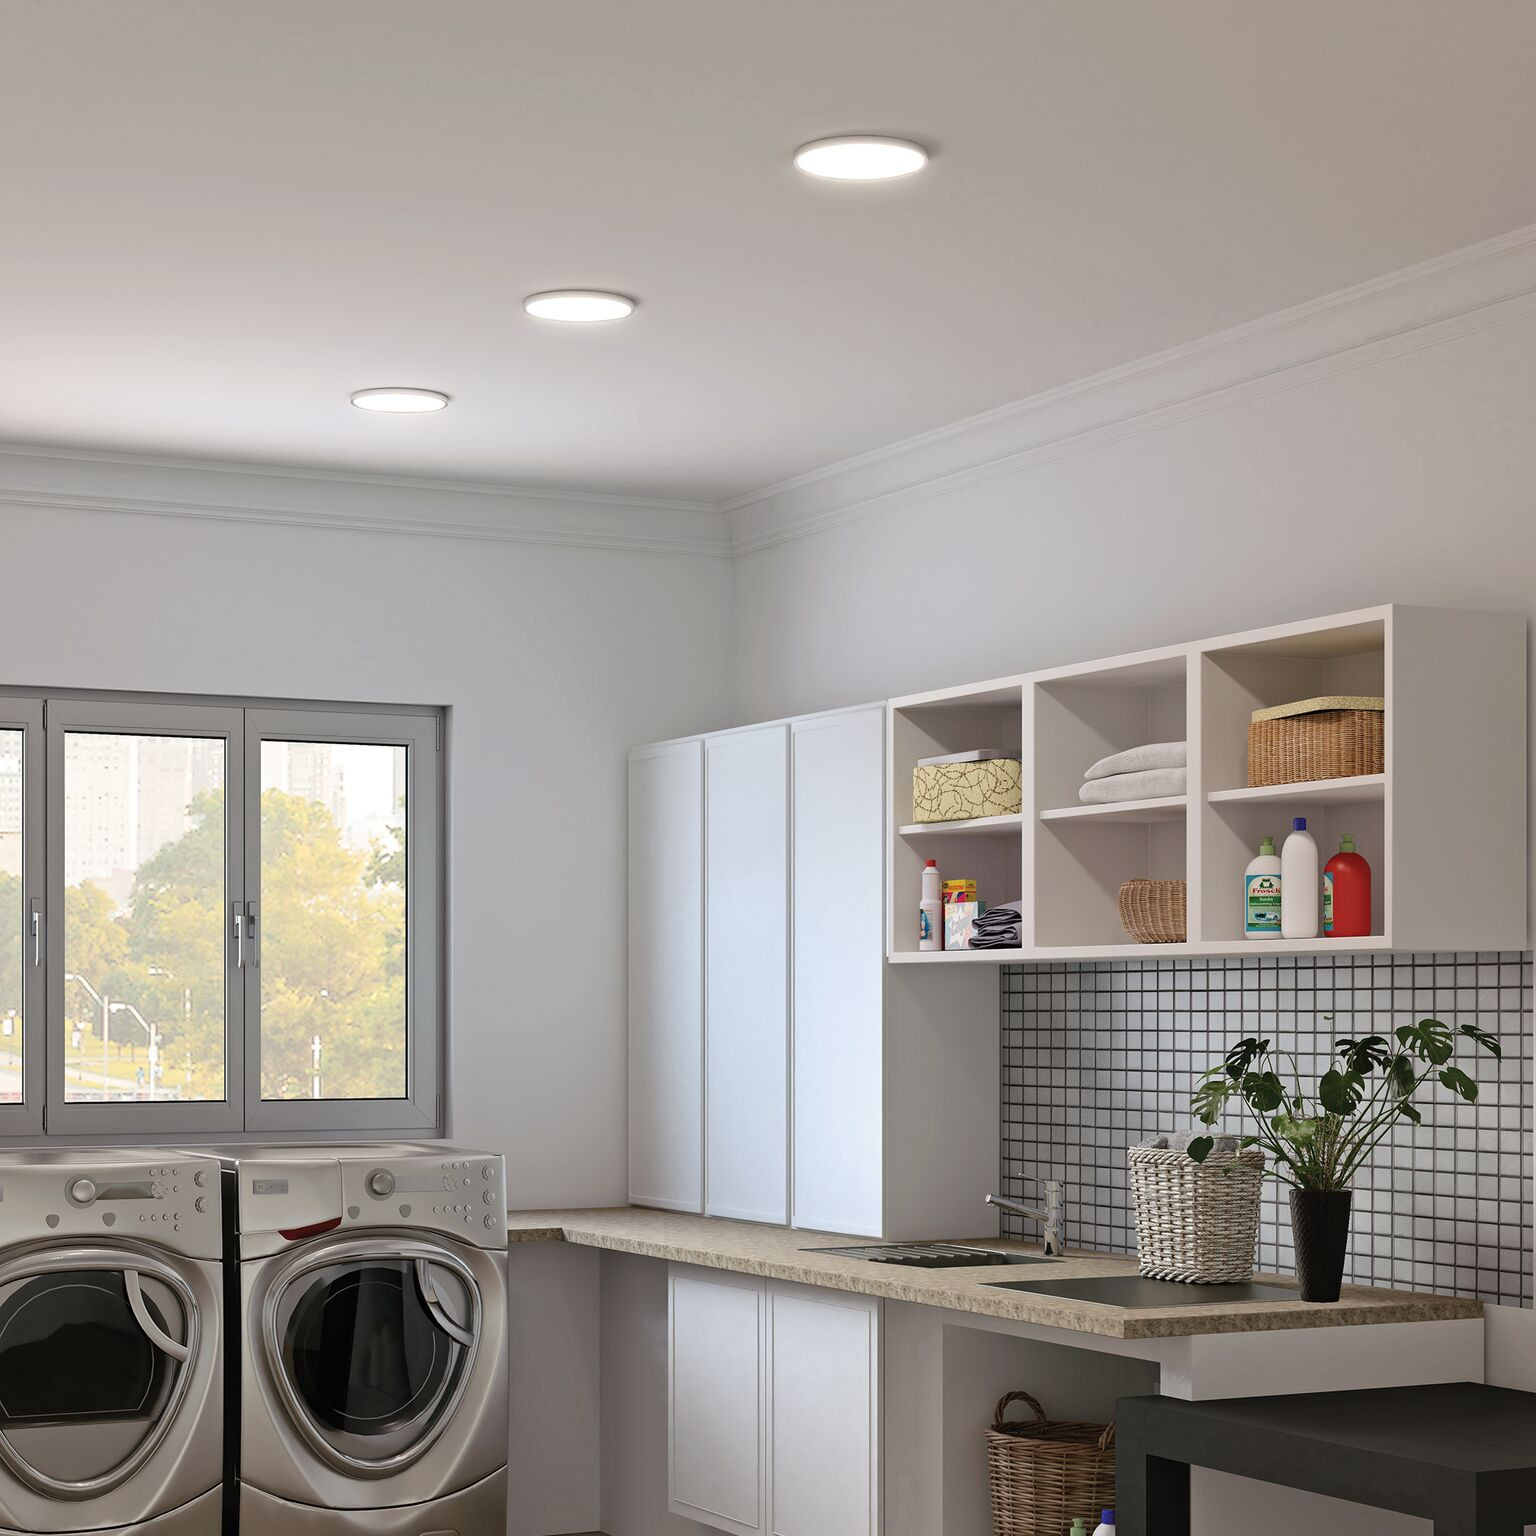 Top 10 Trending Laundry Room Ideas On Houzz: Laundry Room Lighting